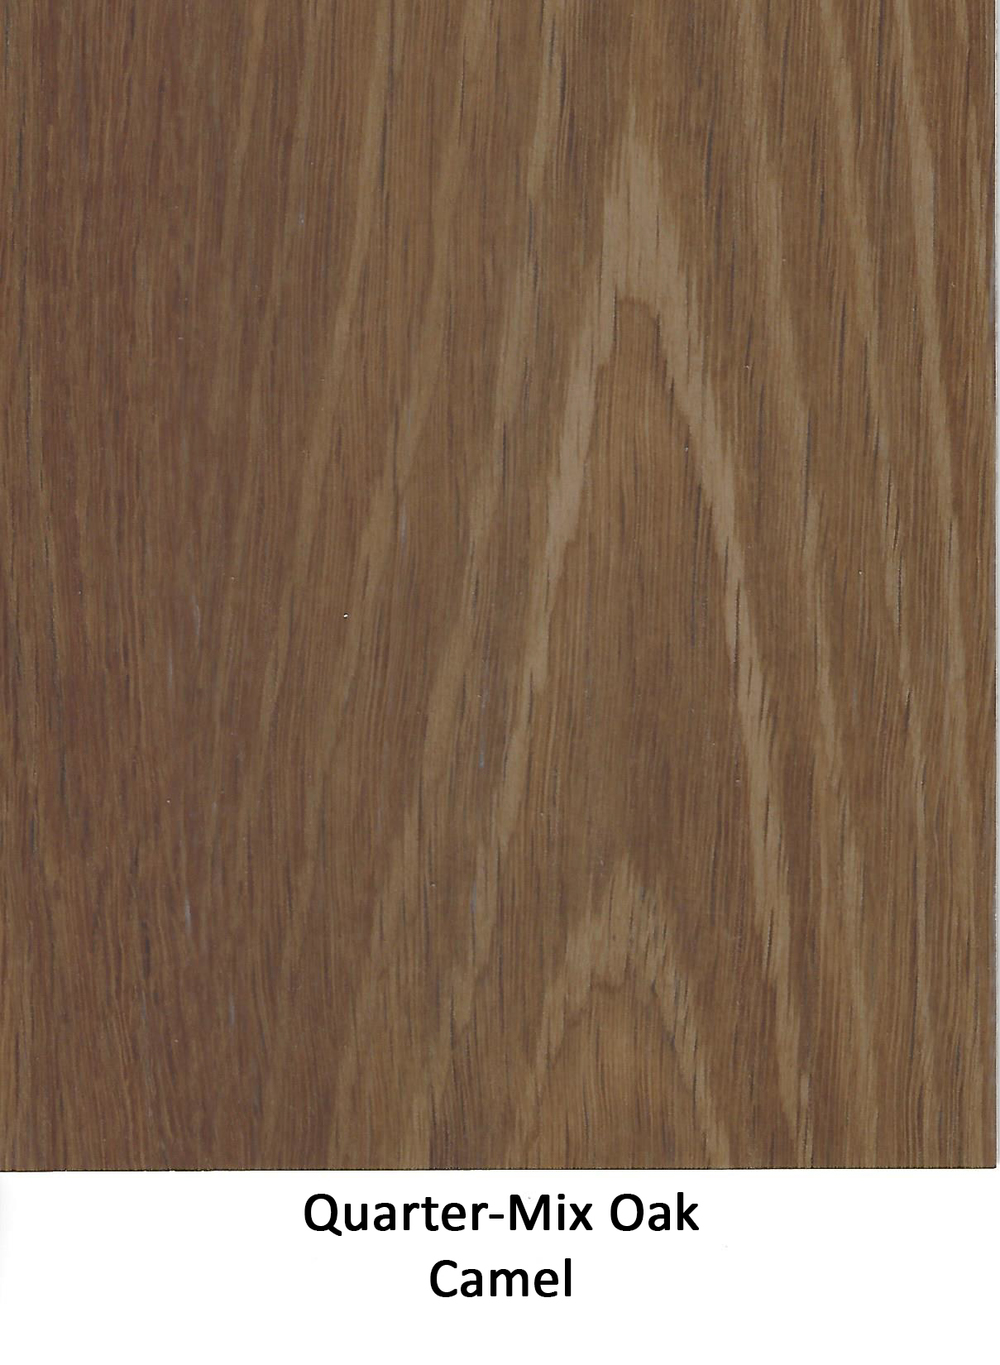 Quarter-Mix-Oak---Camel.jpg